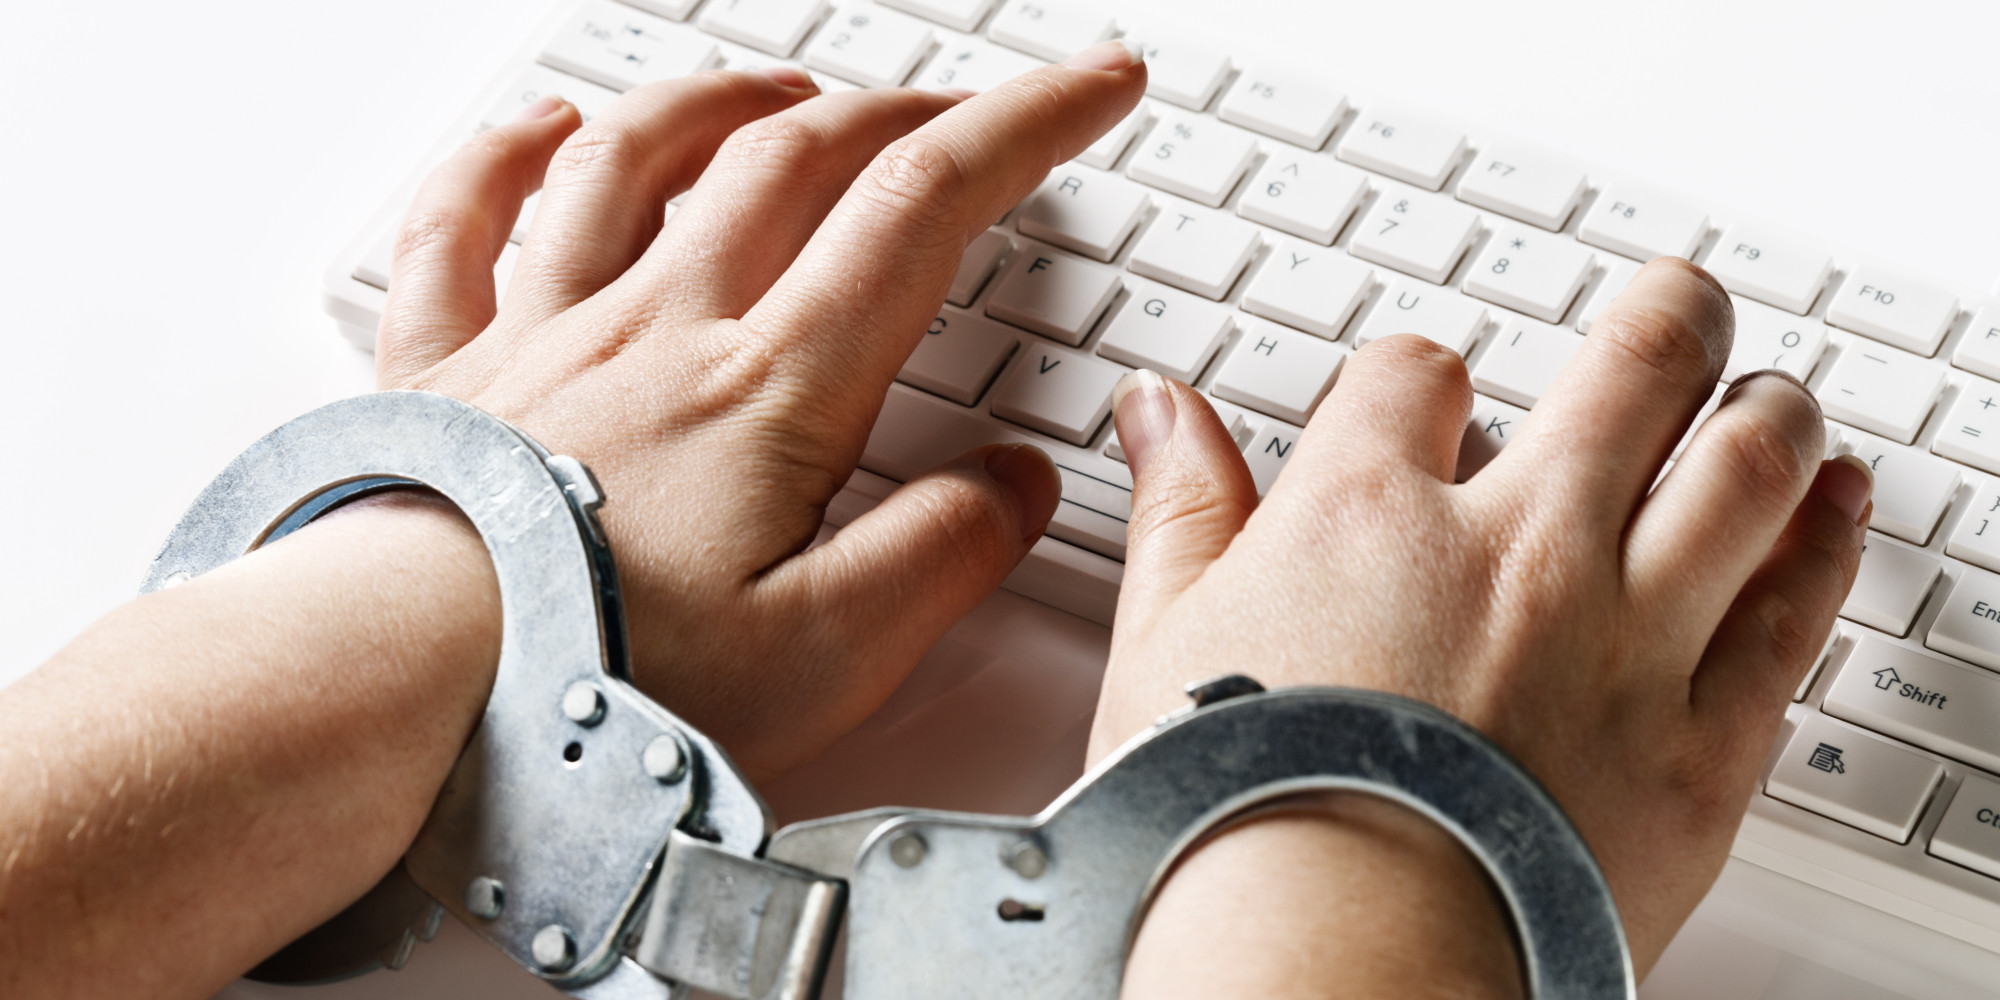 Handcuffed to her computer: very demanding job or censorship